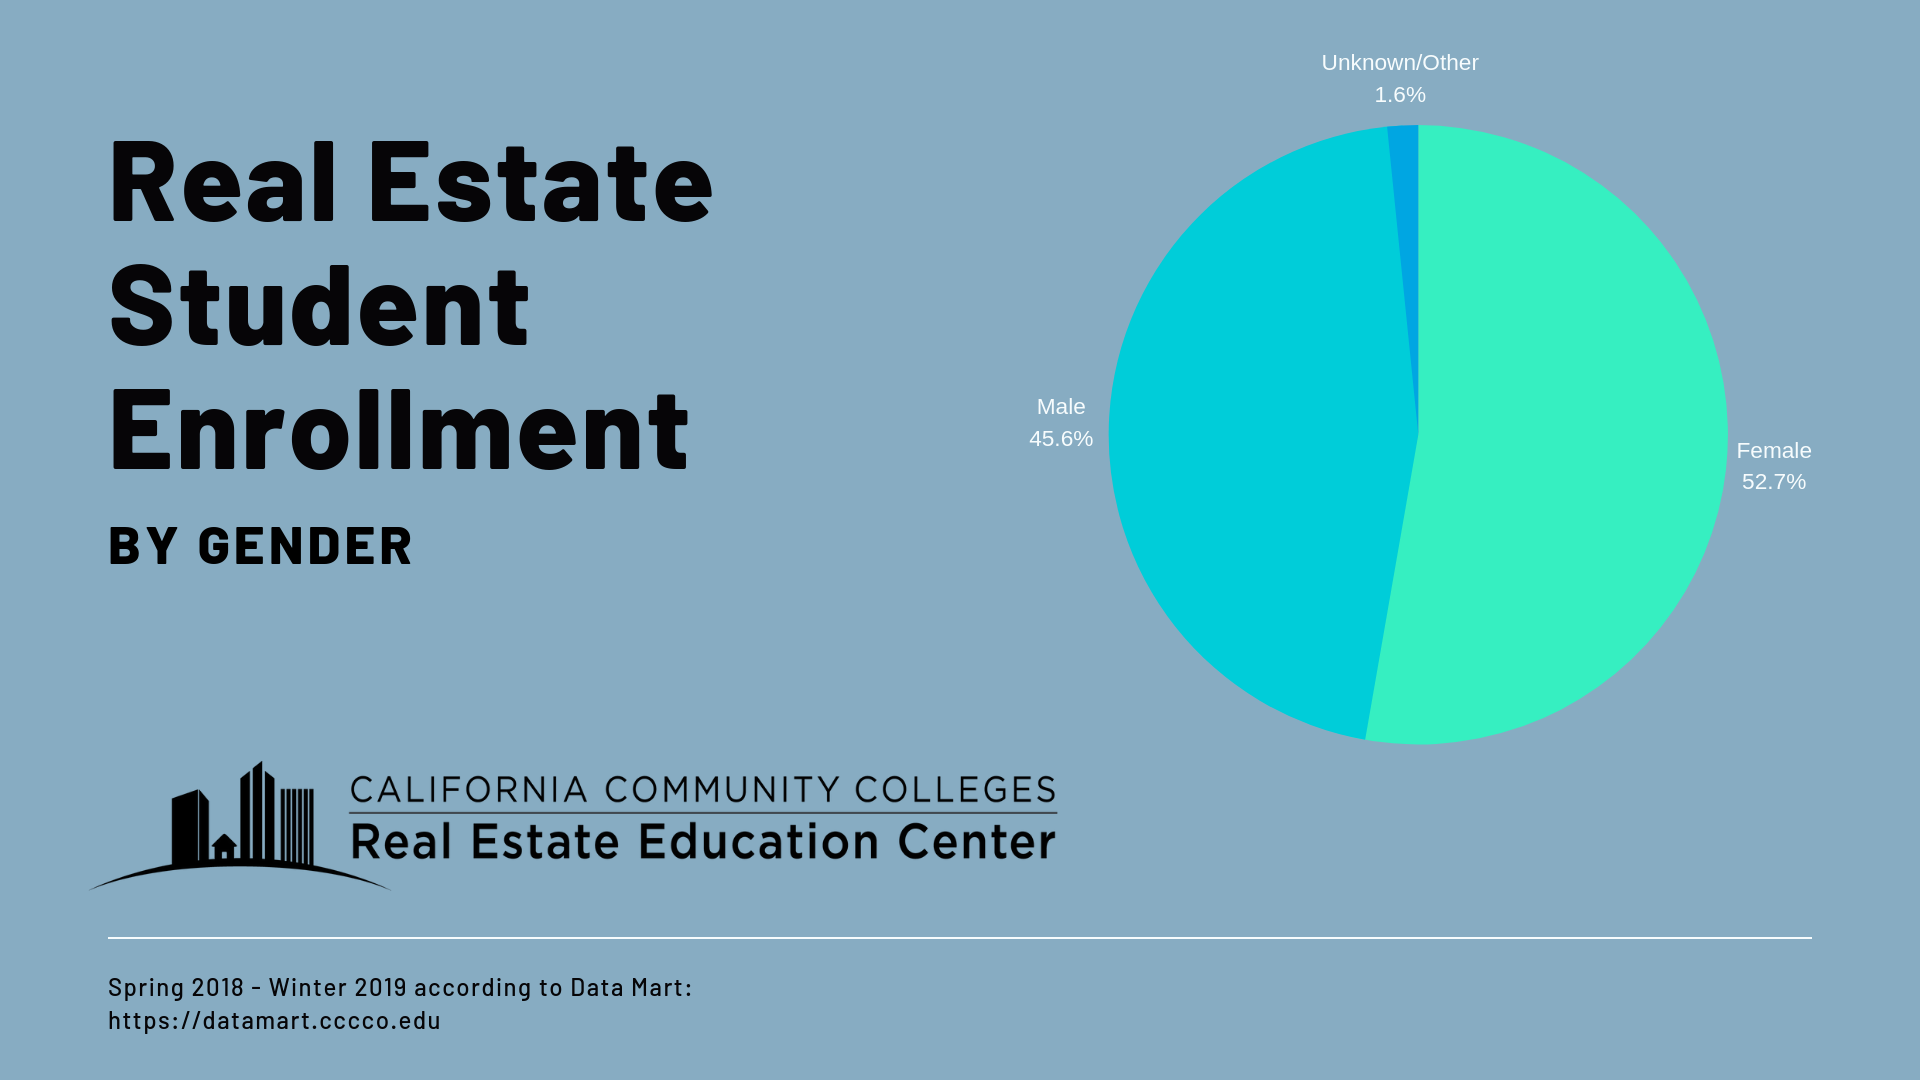 California Community Colleges real estate students for Spring 2018-Winter 2019 are 53% Female, 46% Male, and 1% Other/unknown